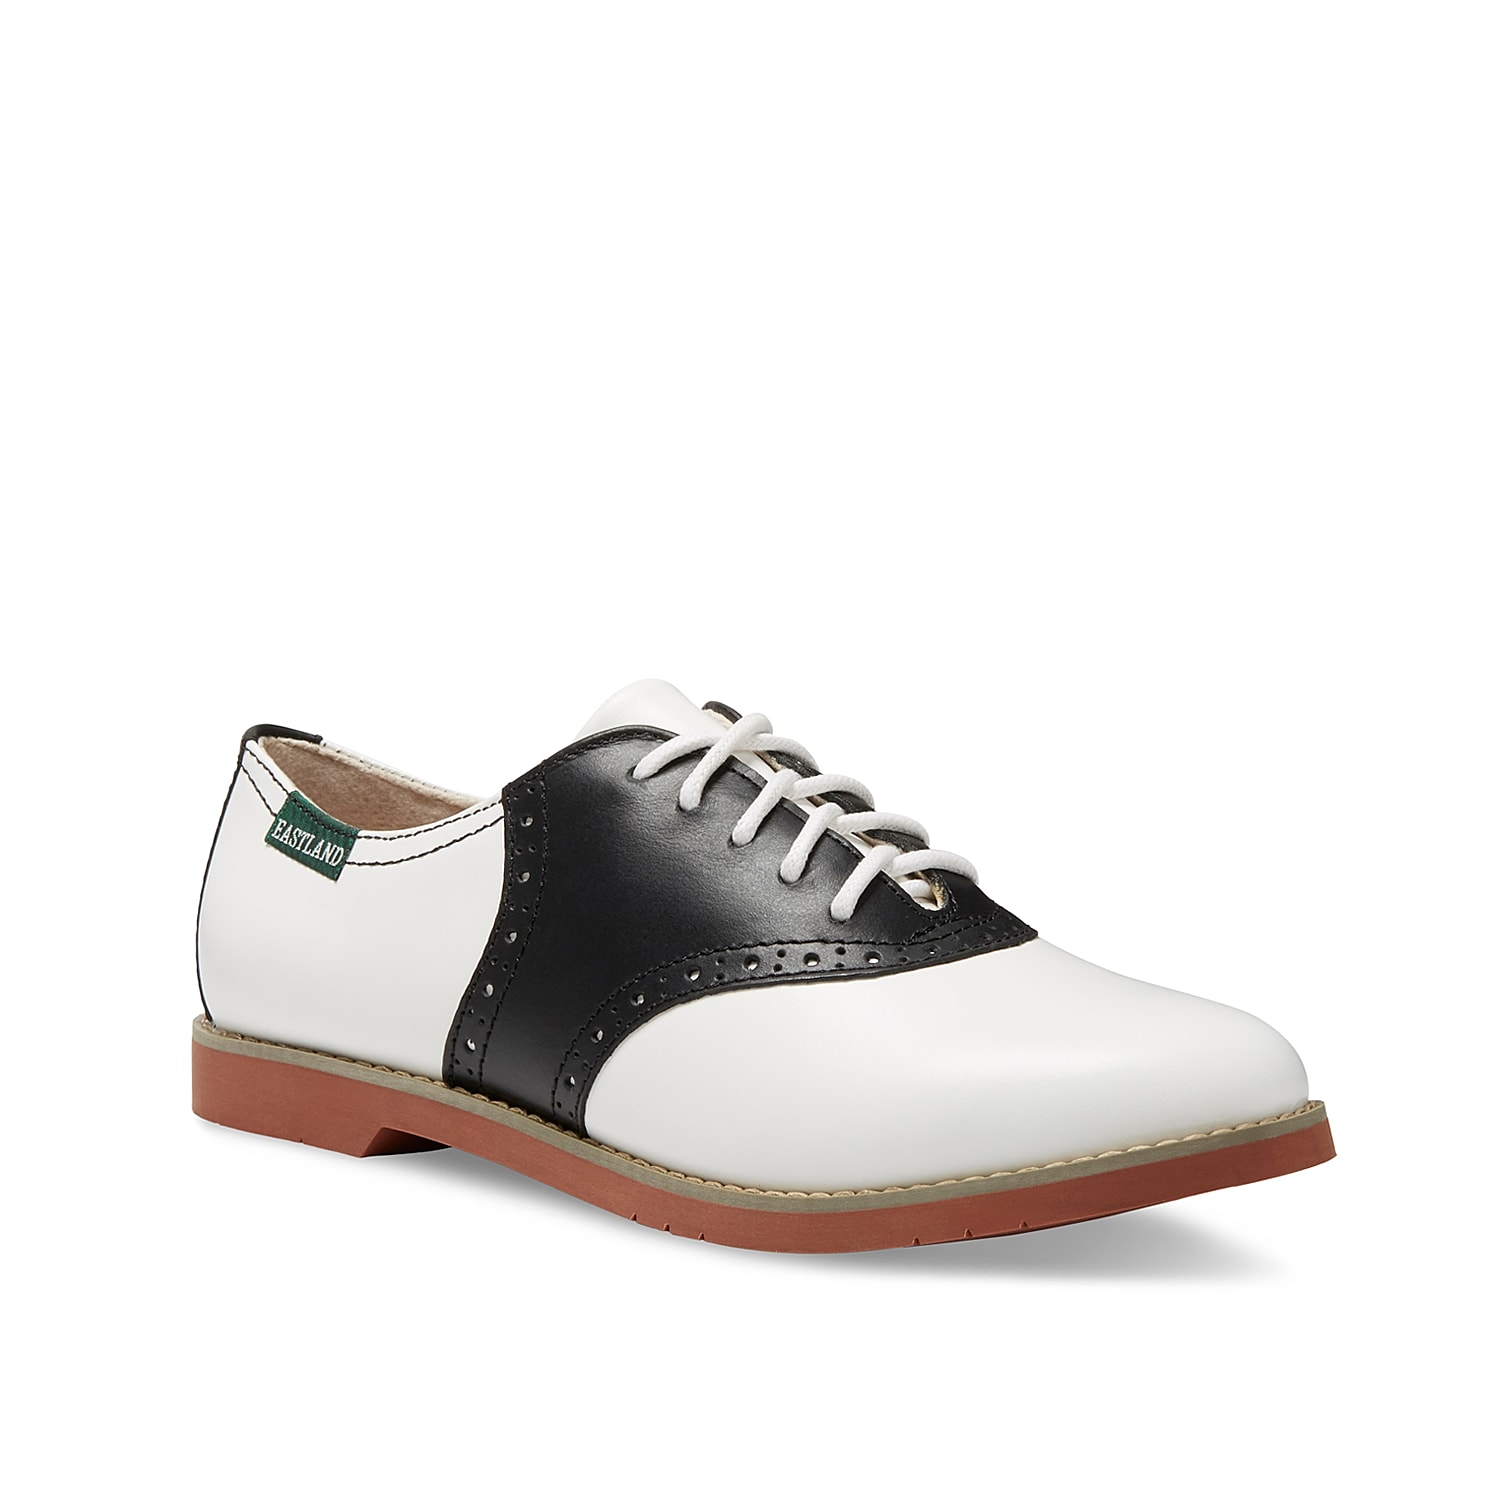 You can\\\'t go wrong with a classic! The Eastland Sadie oxford is a traditional saddle shoe that will put a vintage spin on any outfit.